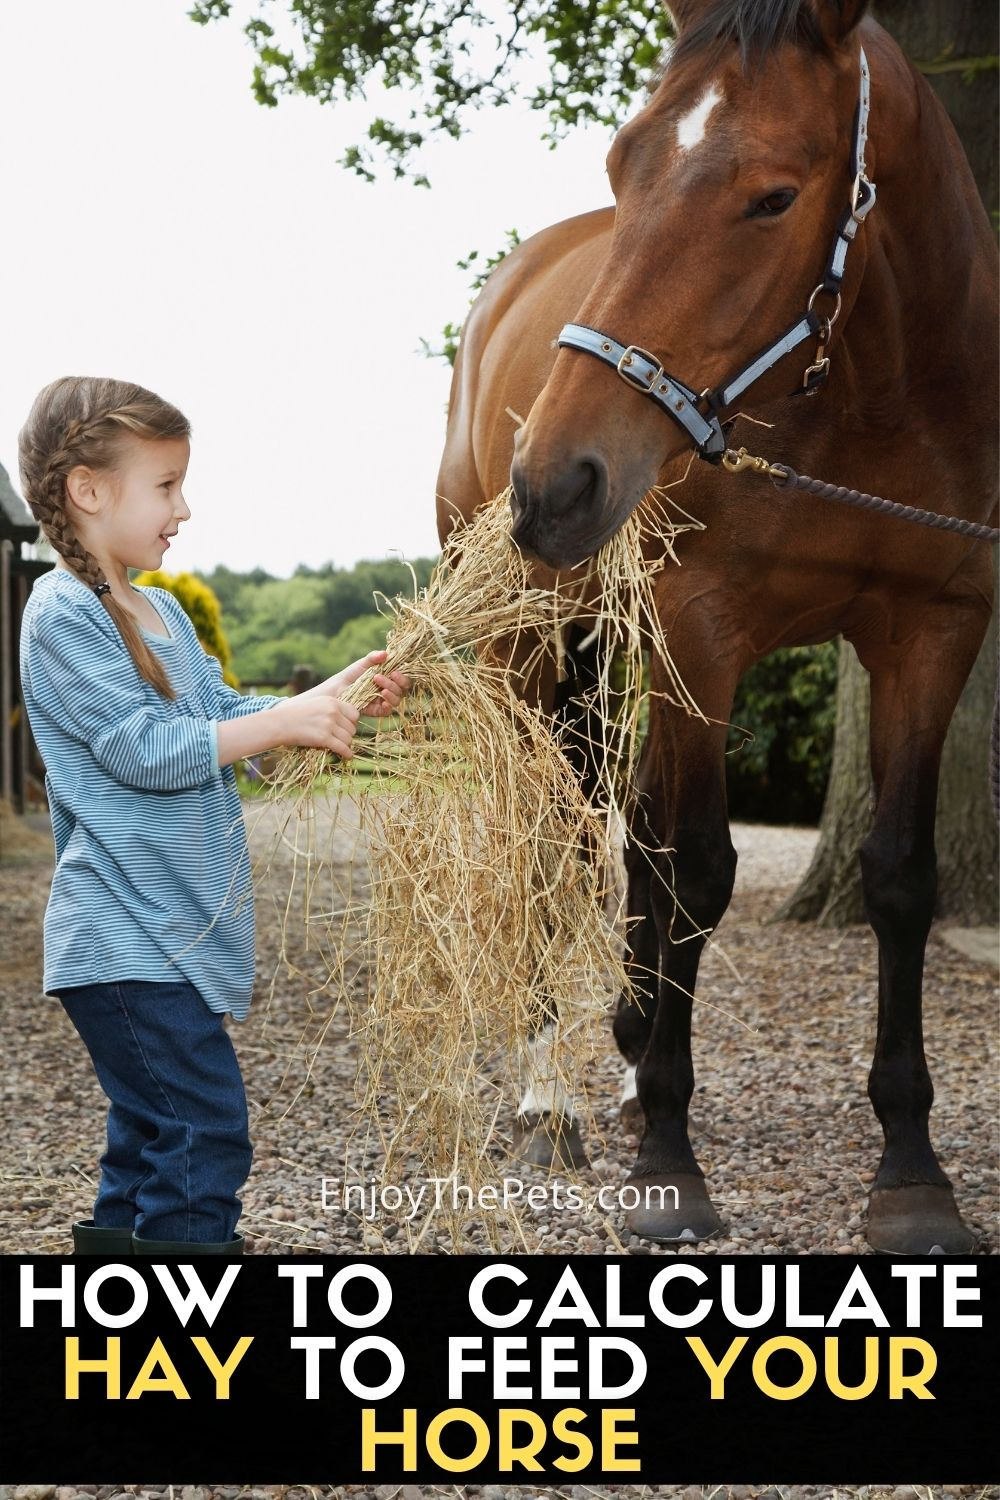 HOW TO CALCULATE HOW MUCH HAY TO FEED YOUR HORSE